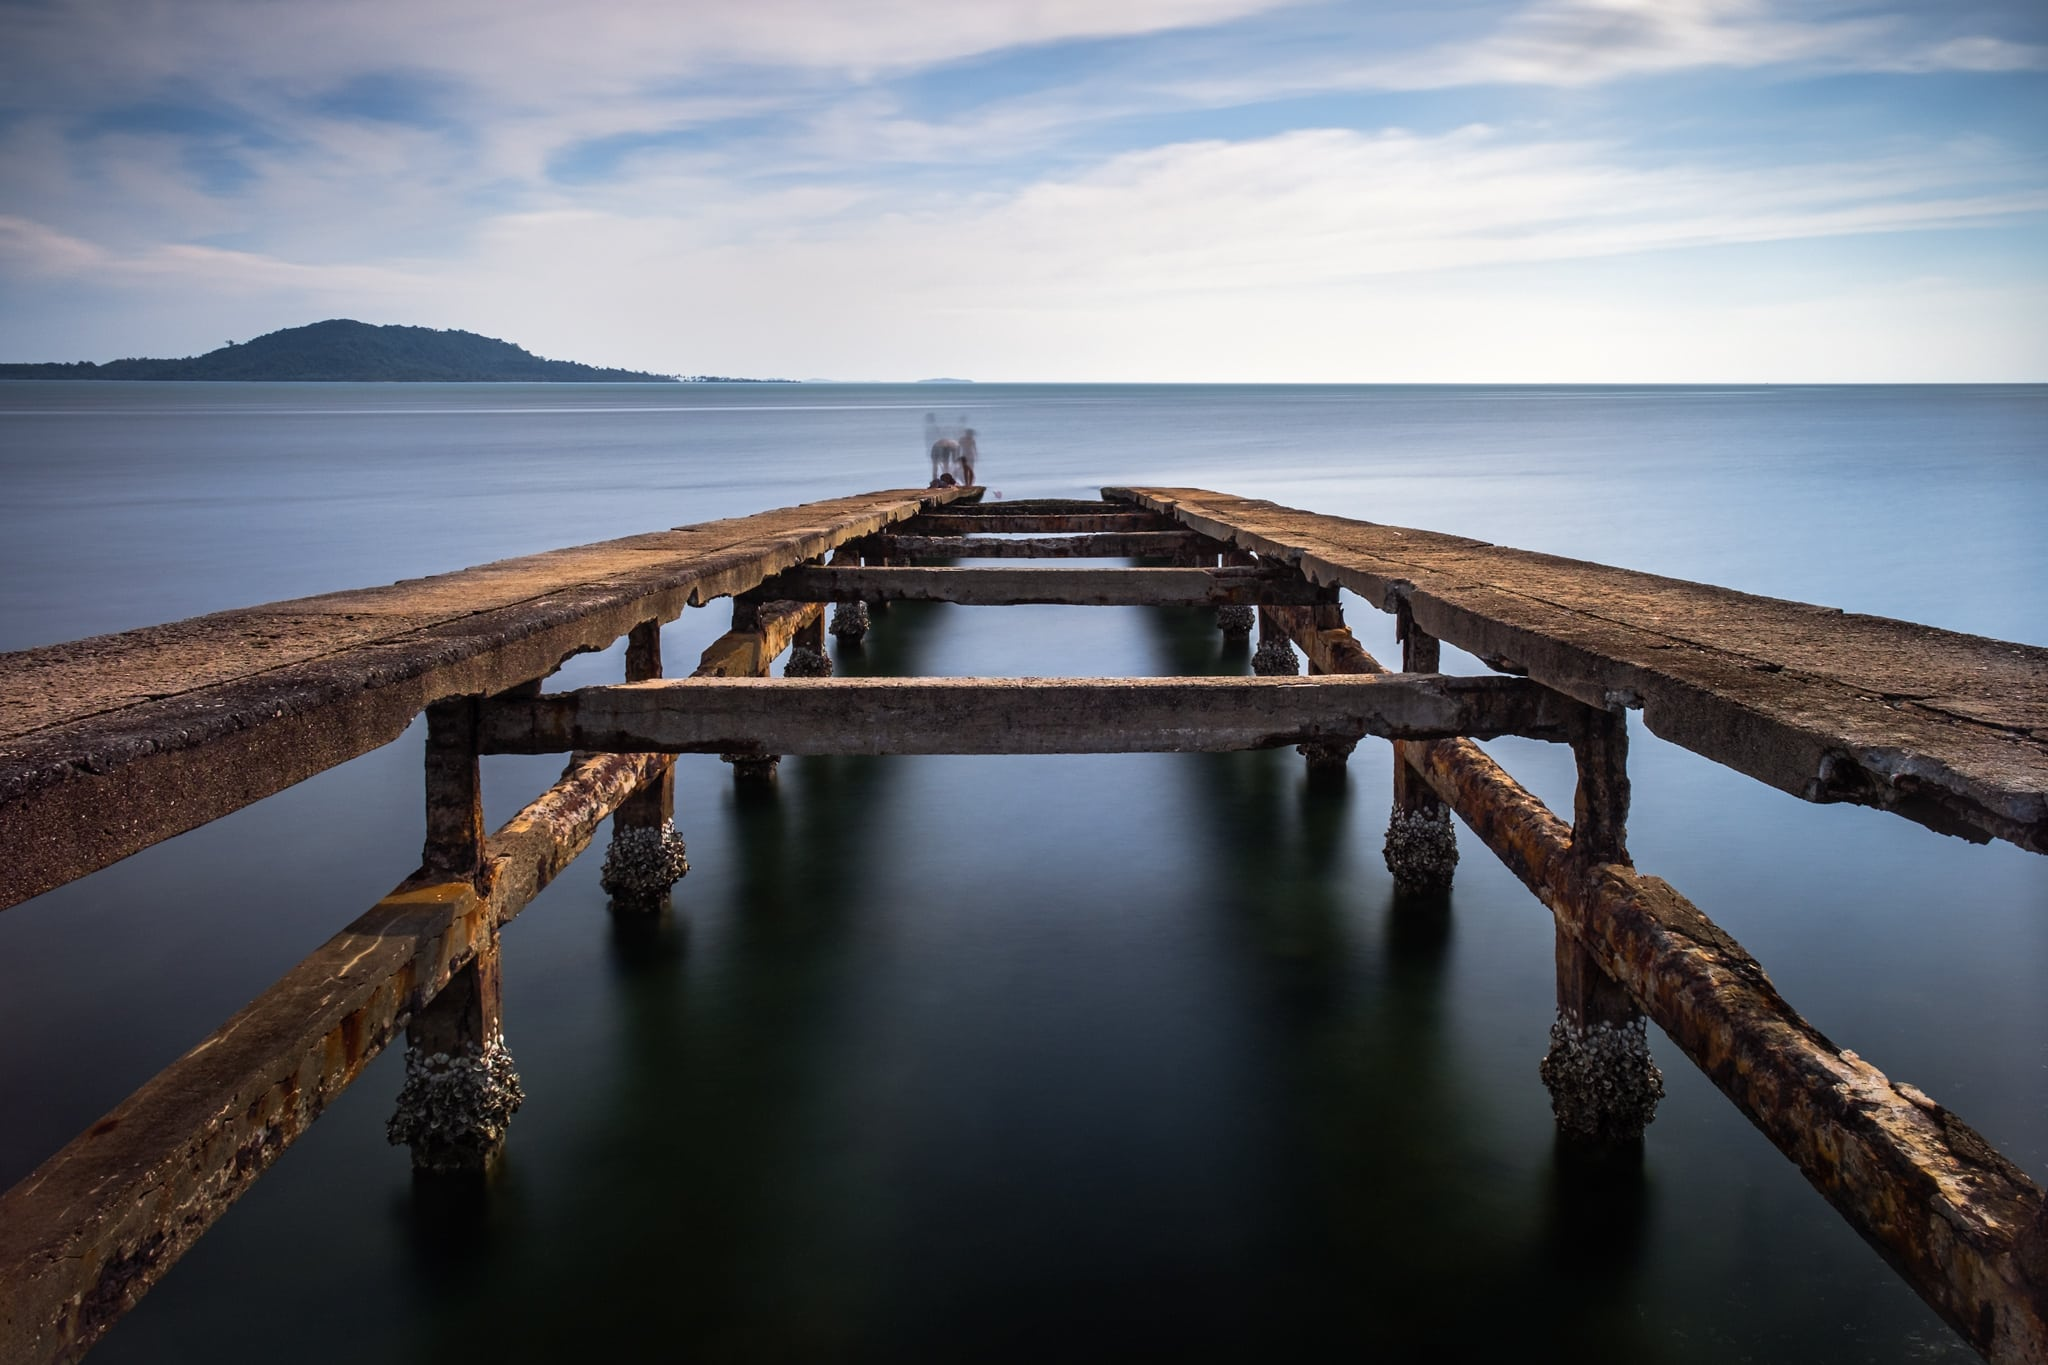 Long exposure of old pier. Kep Beach, Cambodia. Sea water and clouds look smooth and creamy. People on top of the pier are motion blurred, ghostly like.